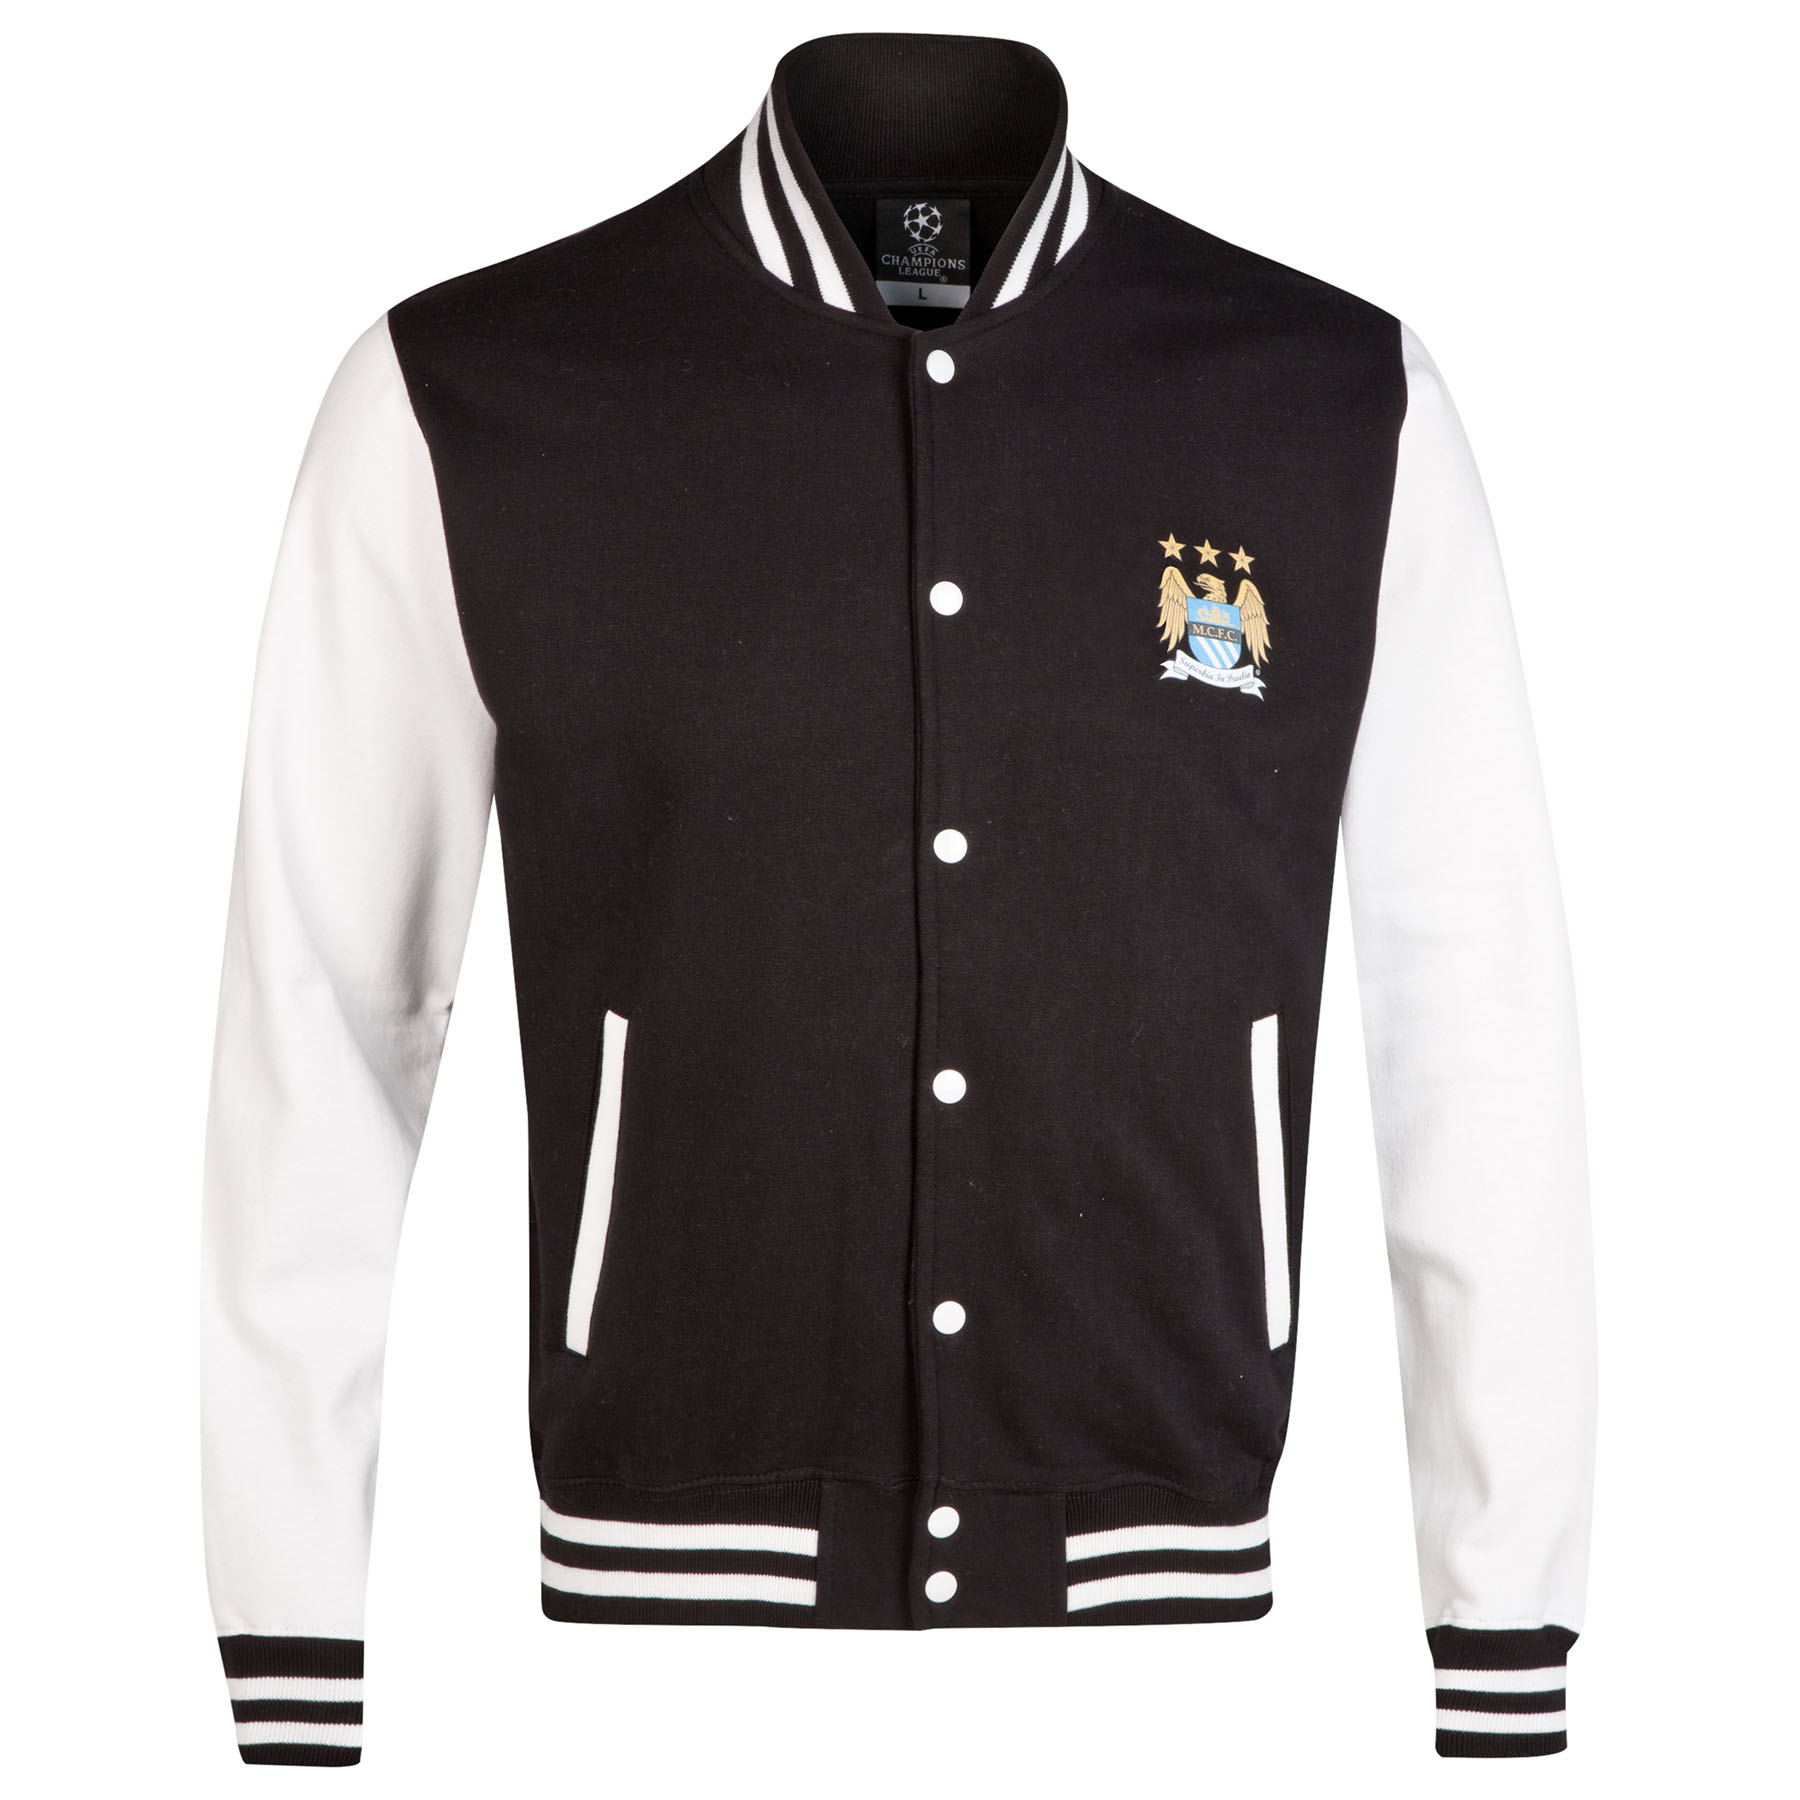 Manchester City UCL Baseball Jacket - Black/White - Mens